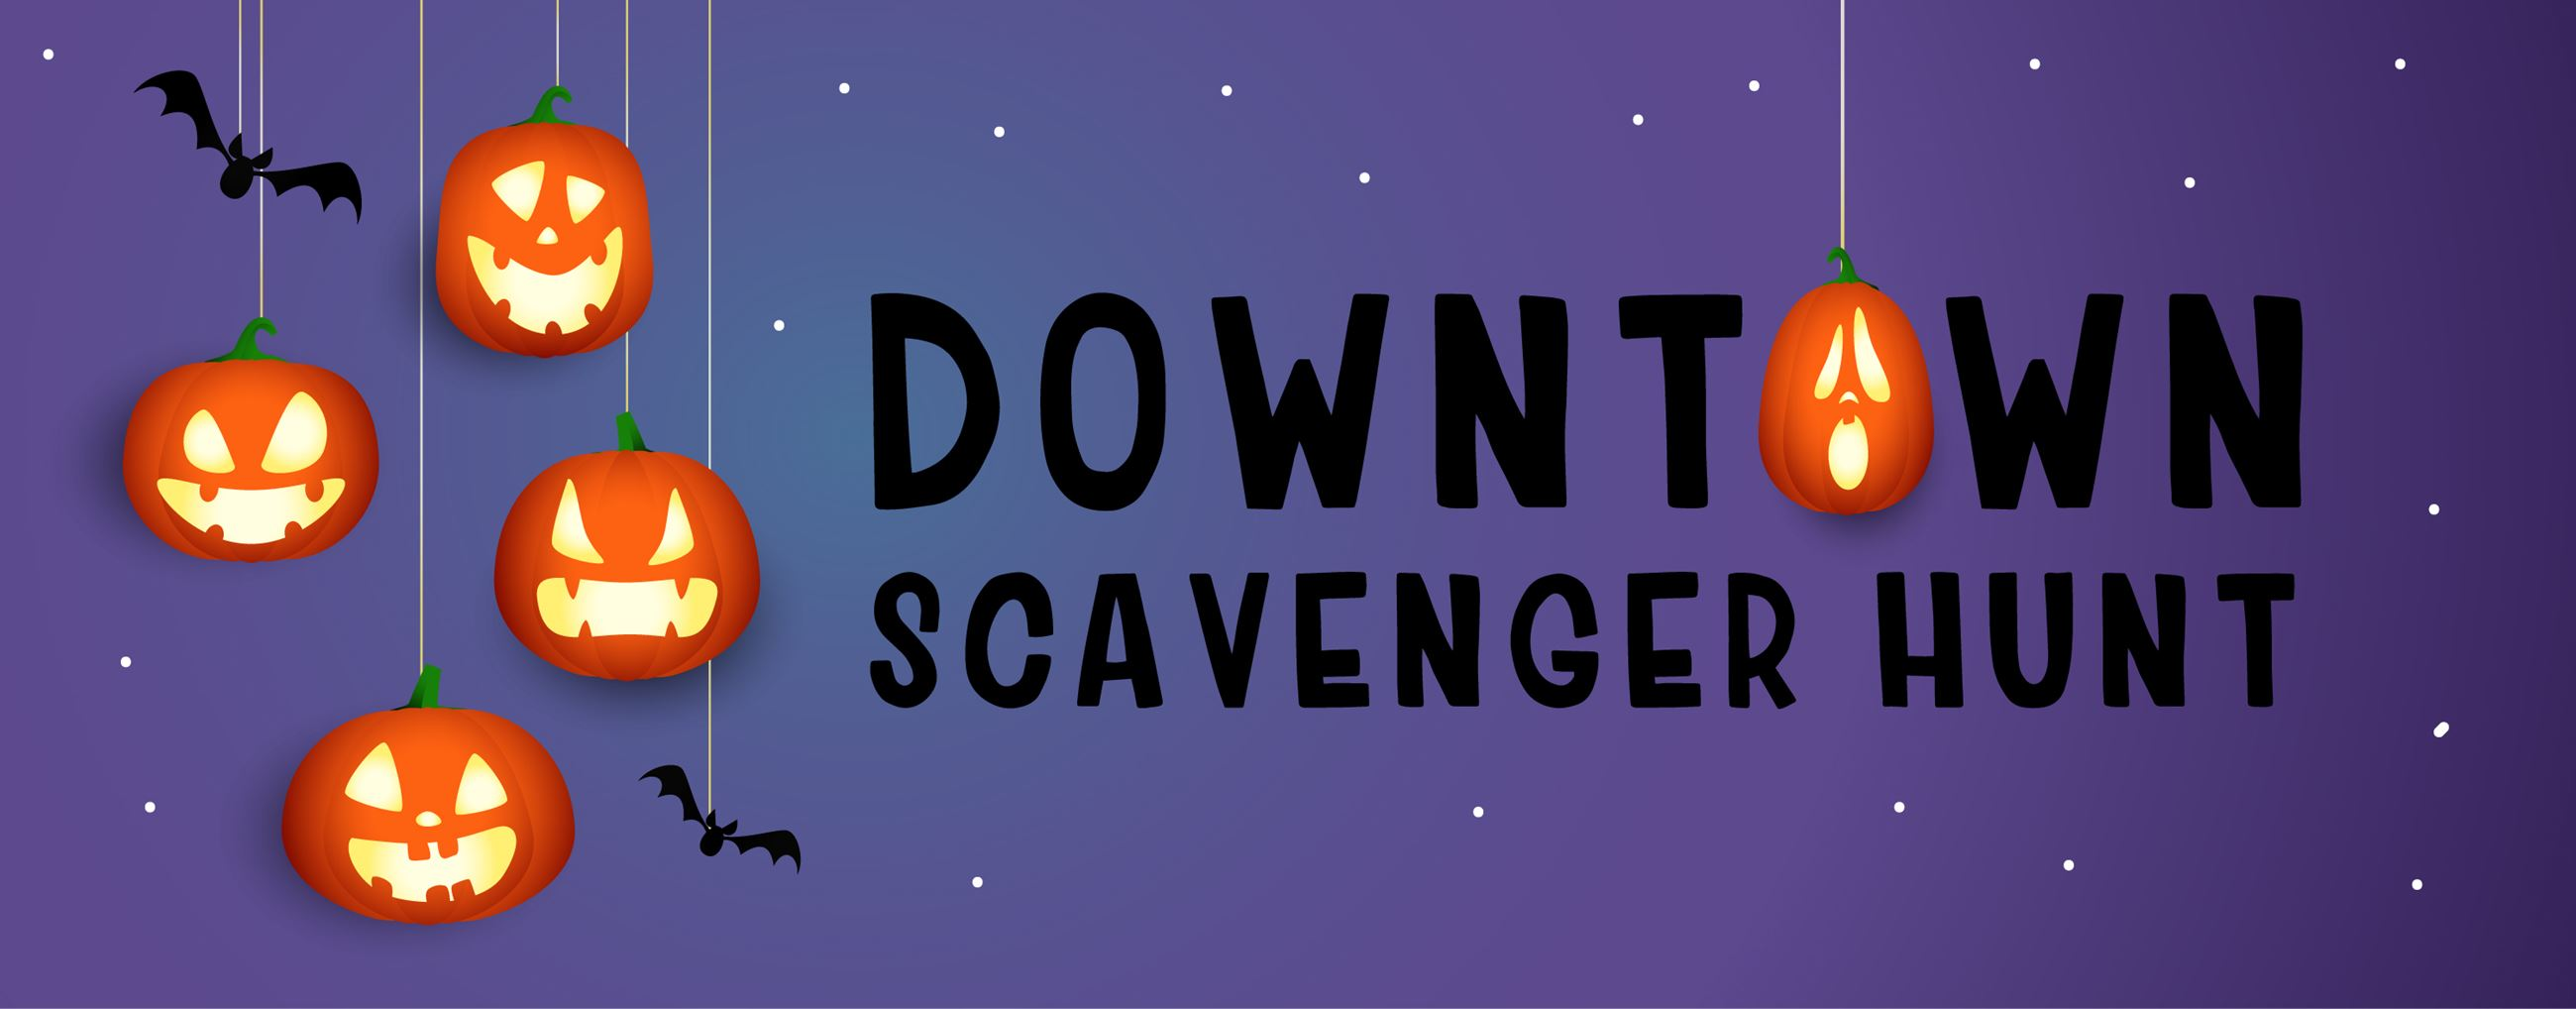 Scavenger-Hunt-Cover